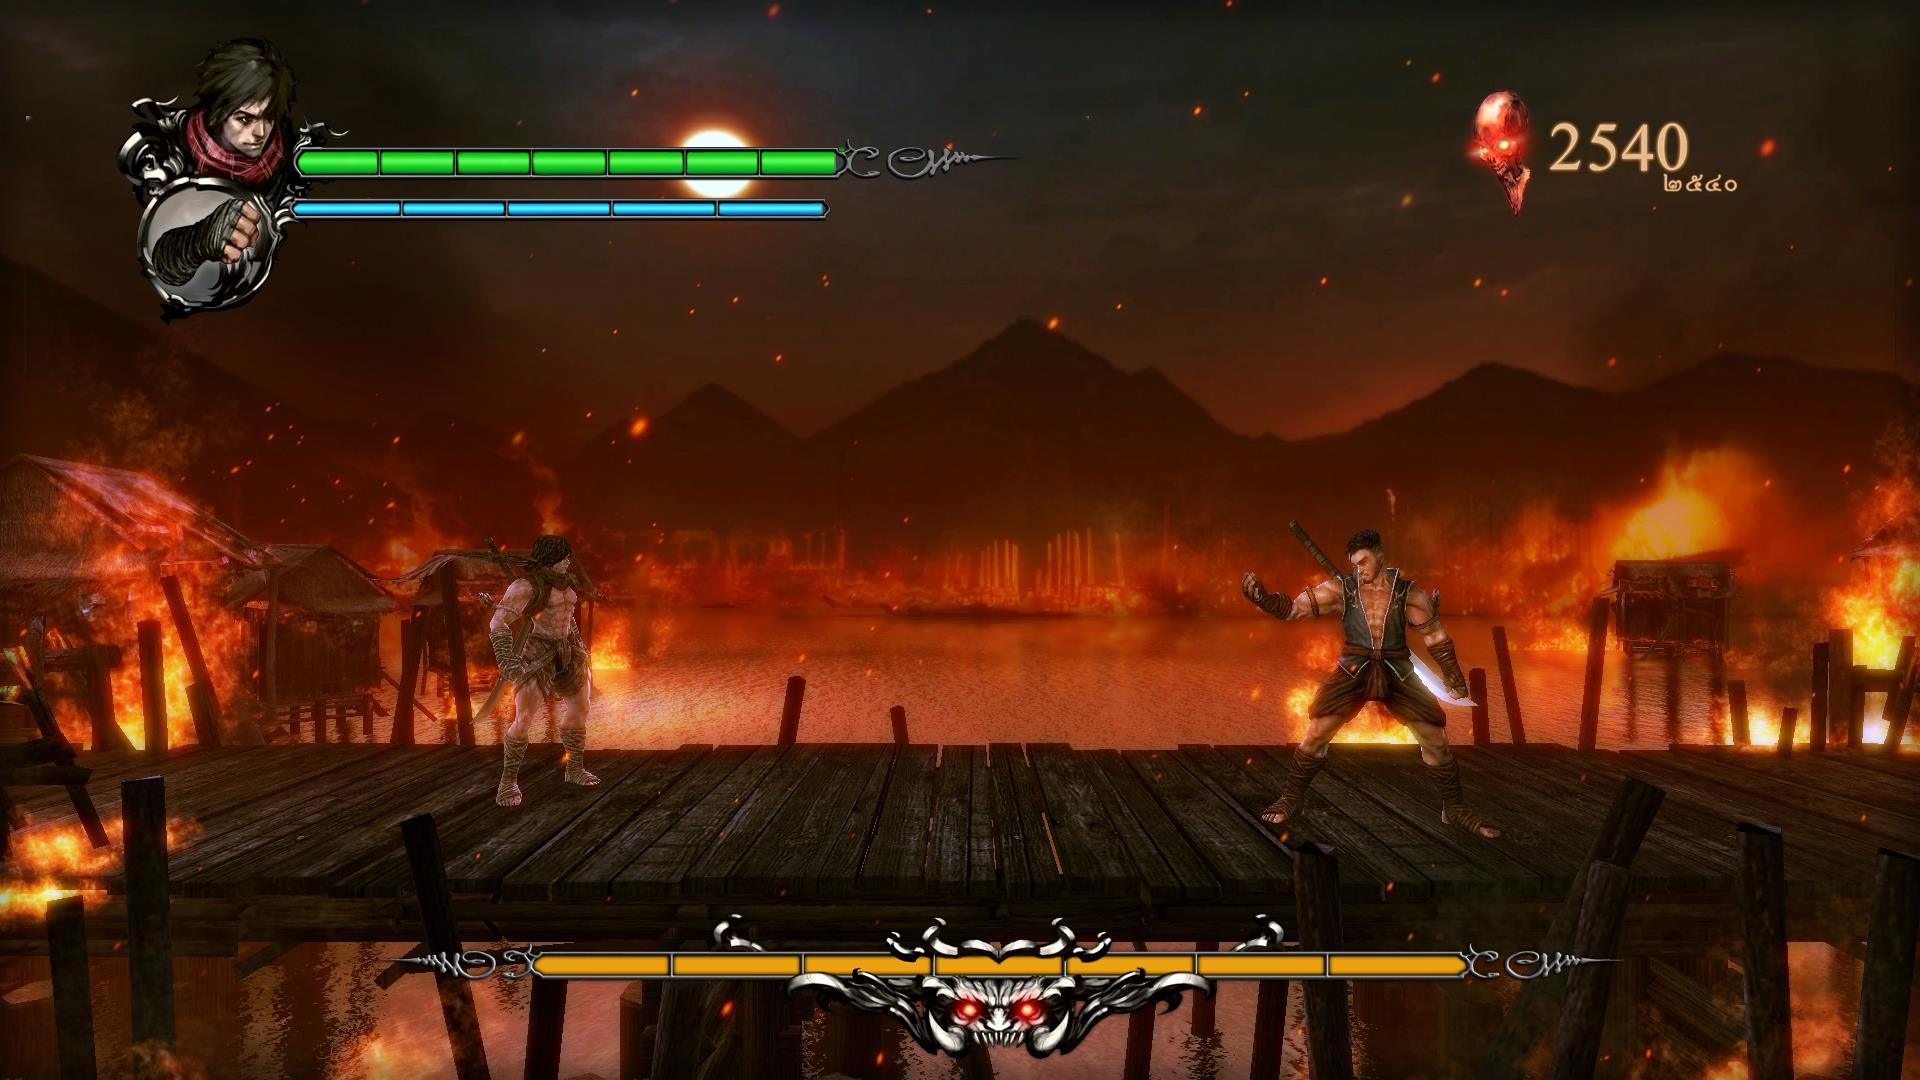 Martial arts boss fight with lava in the background? Say it isn't so.